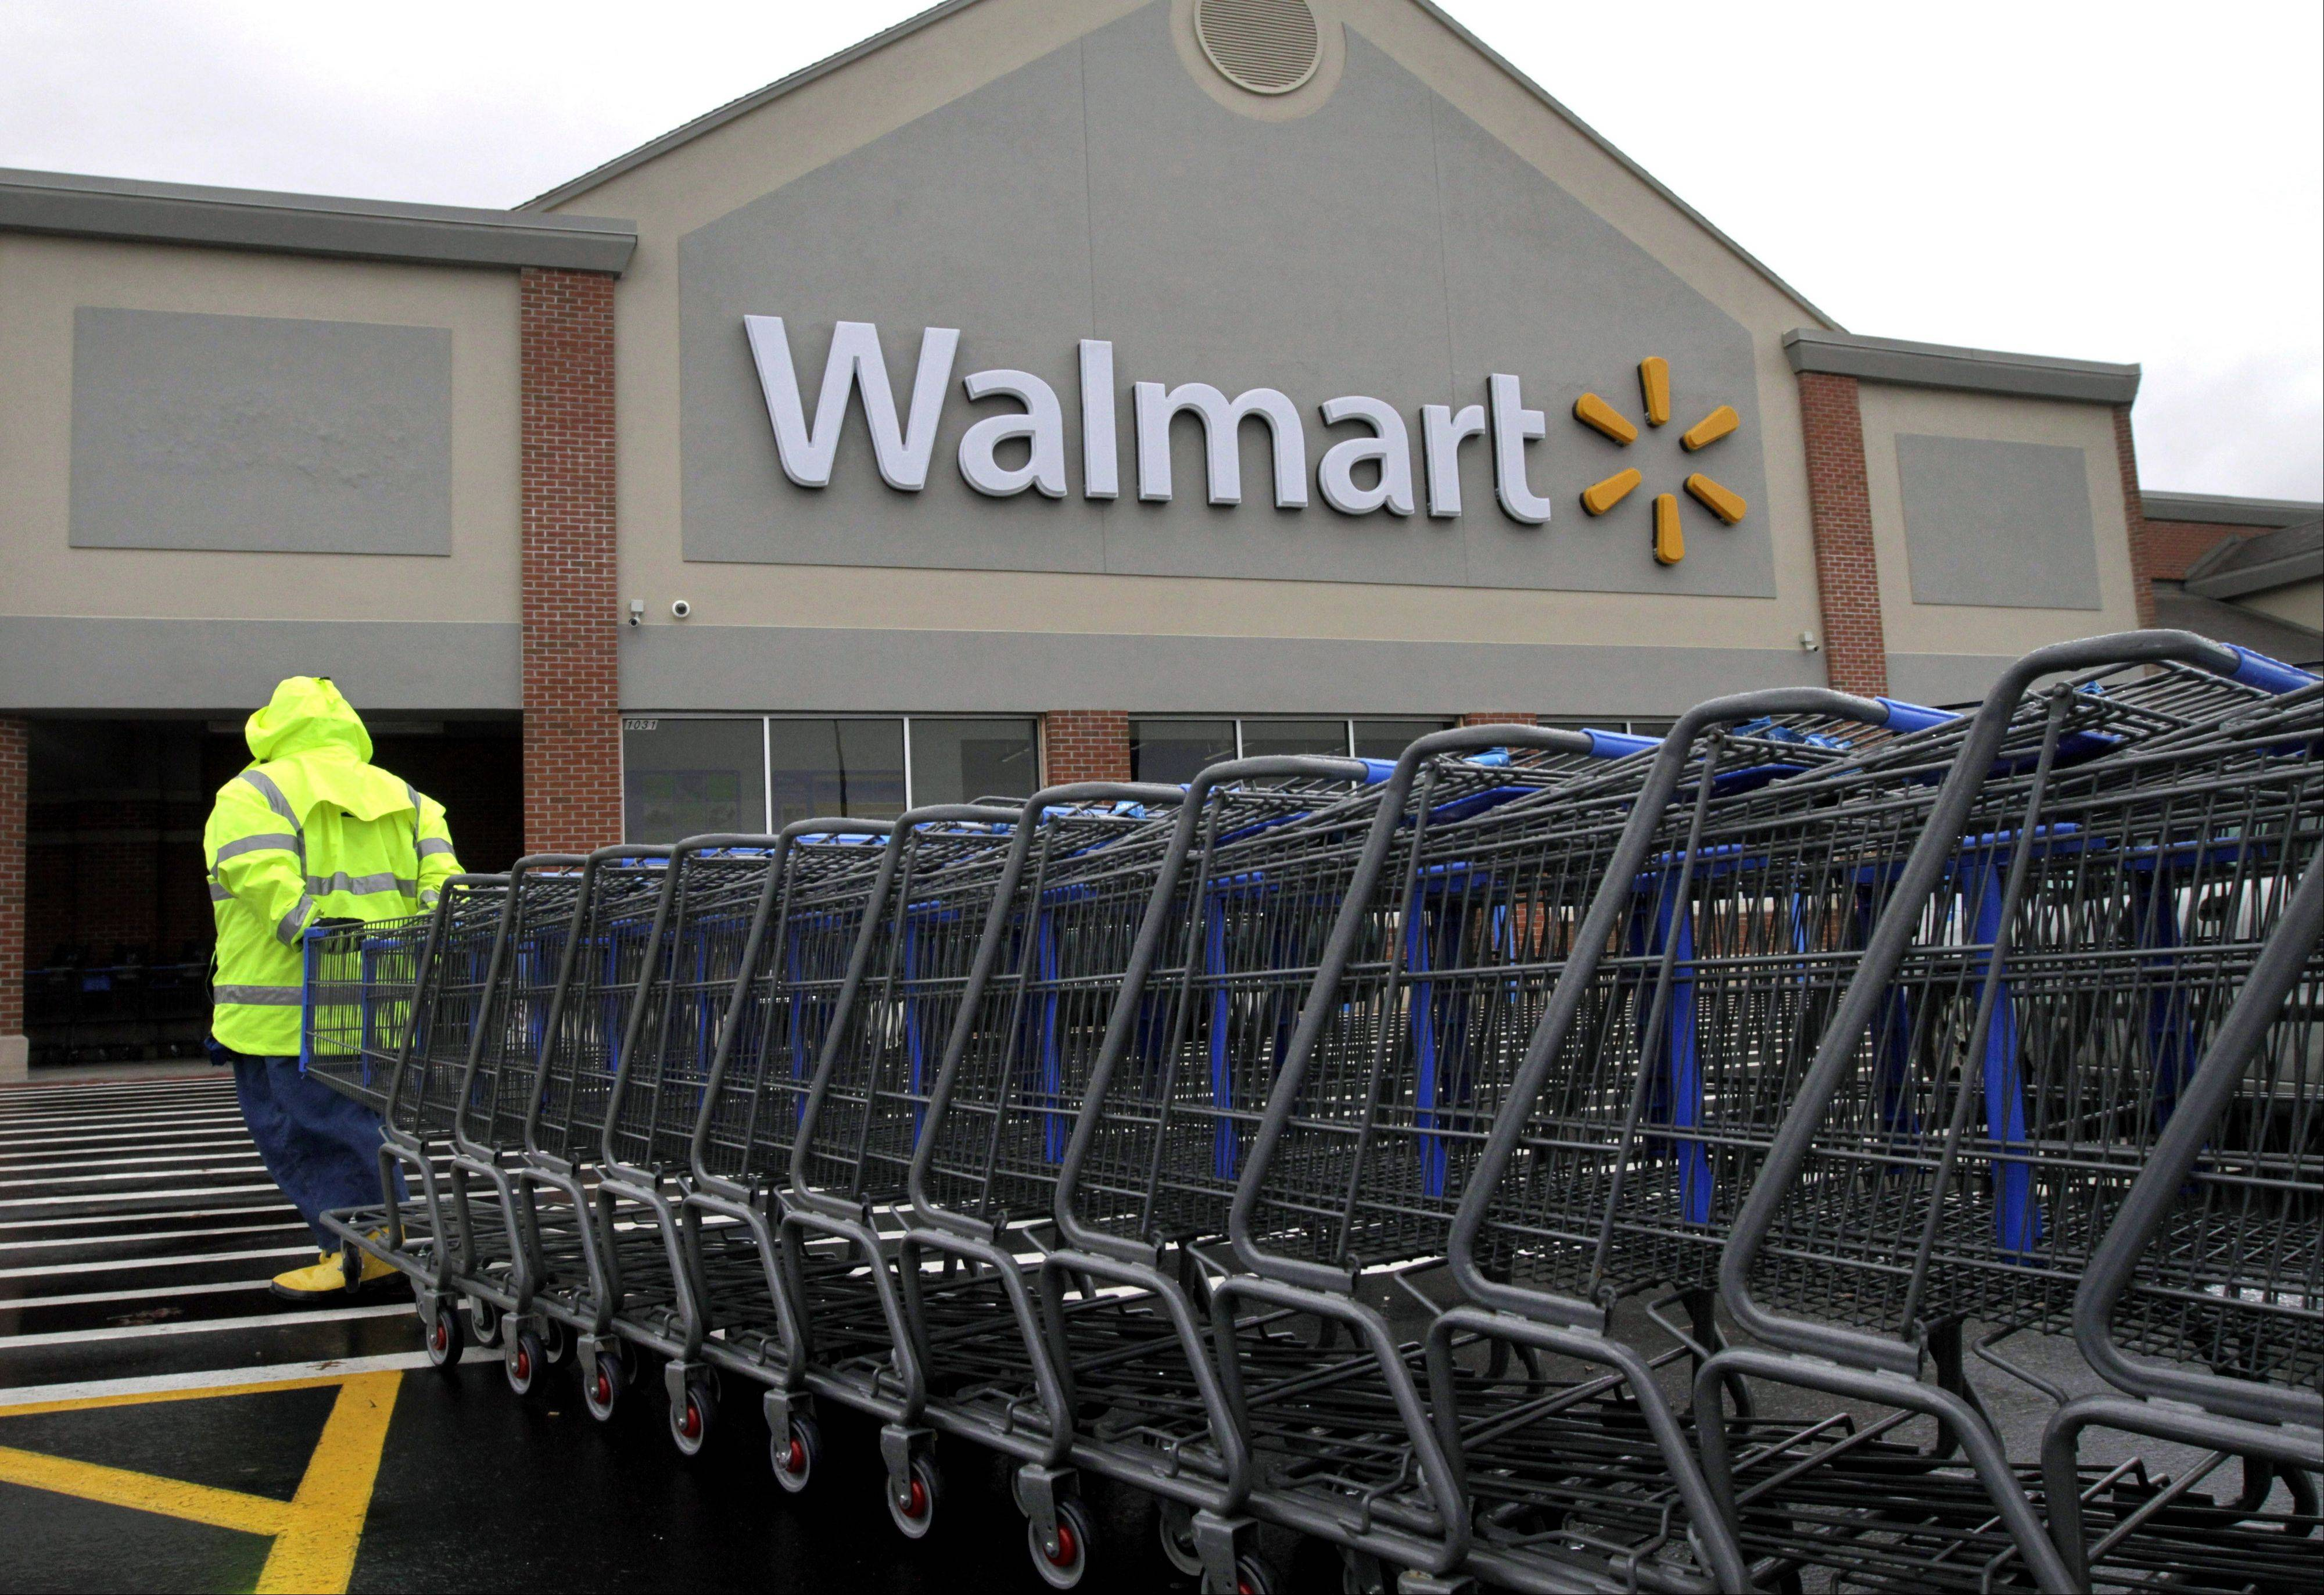 The world�s biggest retailer, Wal-Mart Stores Inc., says it is likely that it will incur a loss from bribery probes into its operations in Mexico and other countries.